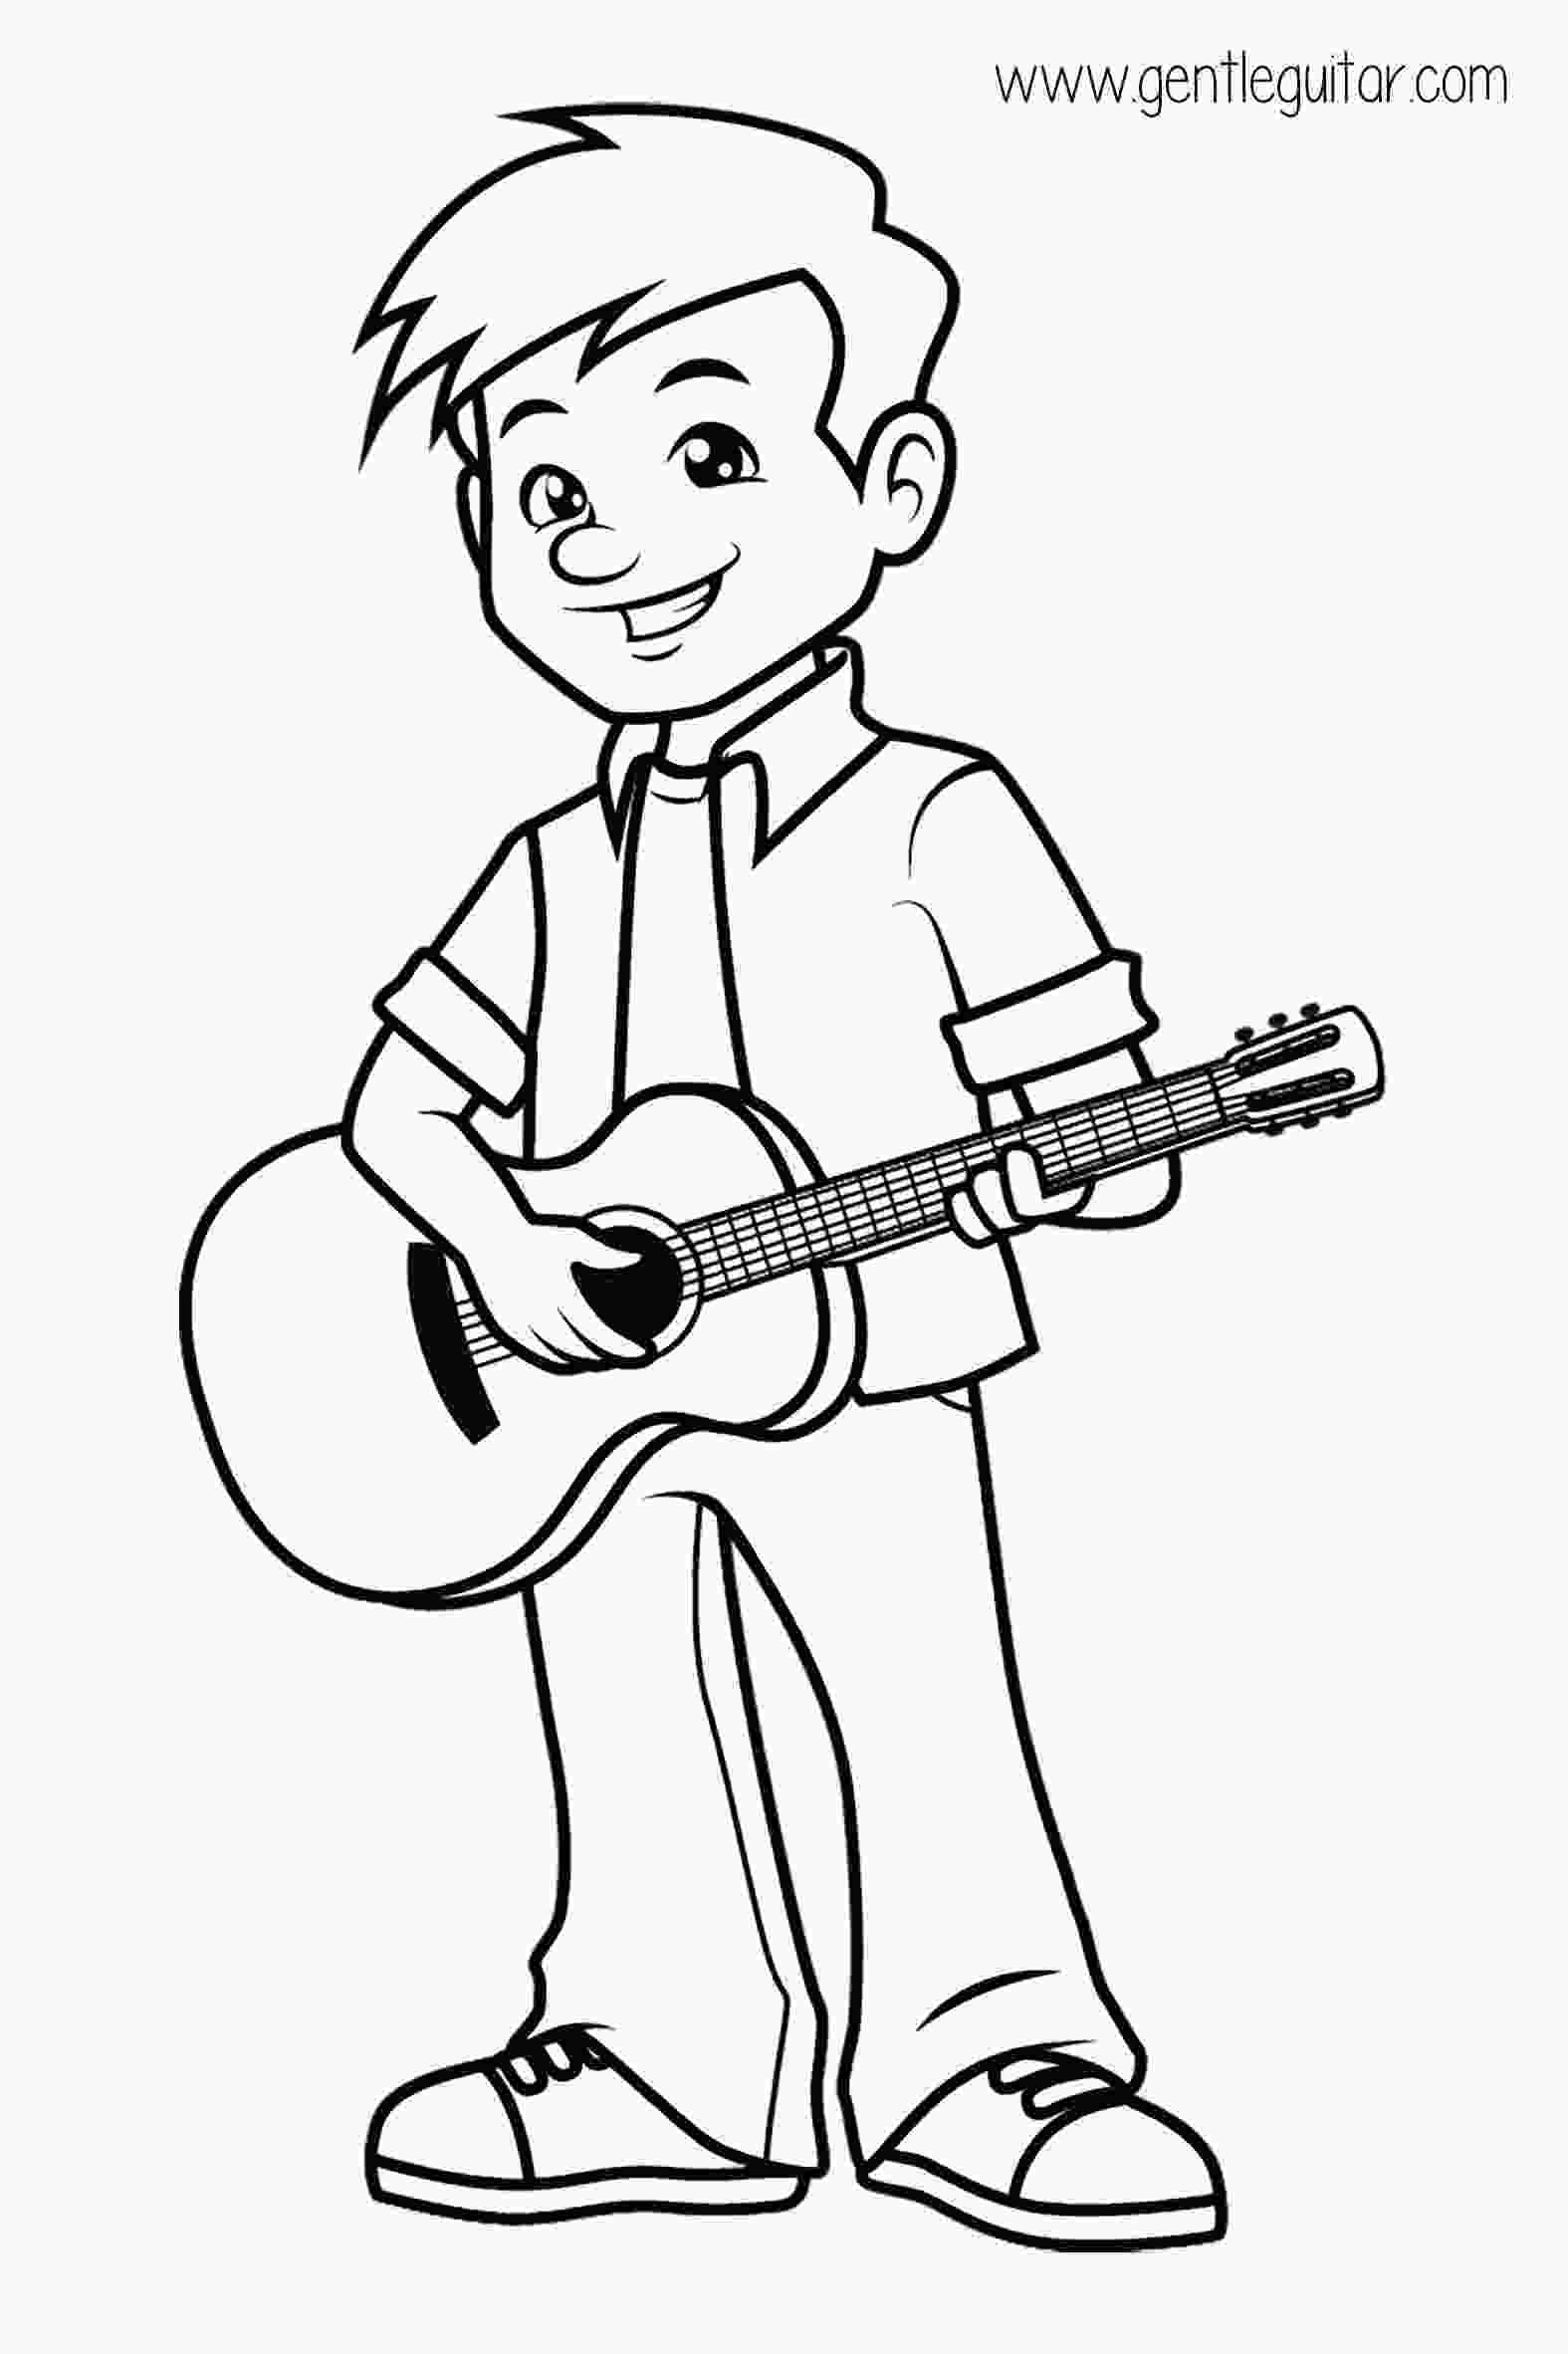 coloring music for kids coloring a boy playing guitar coloring prepares children